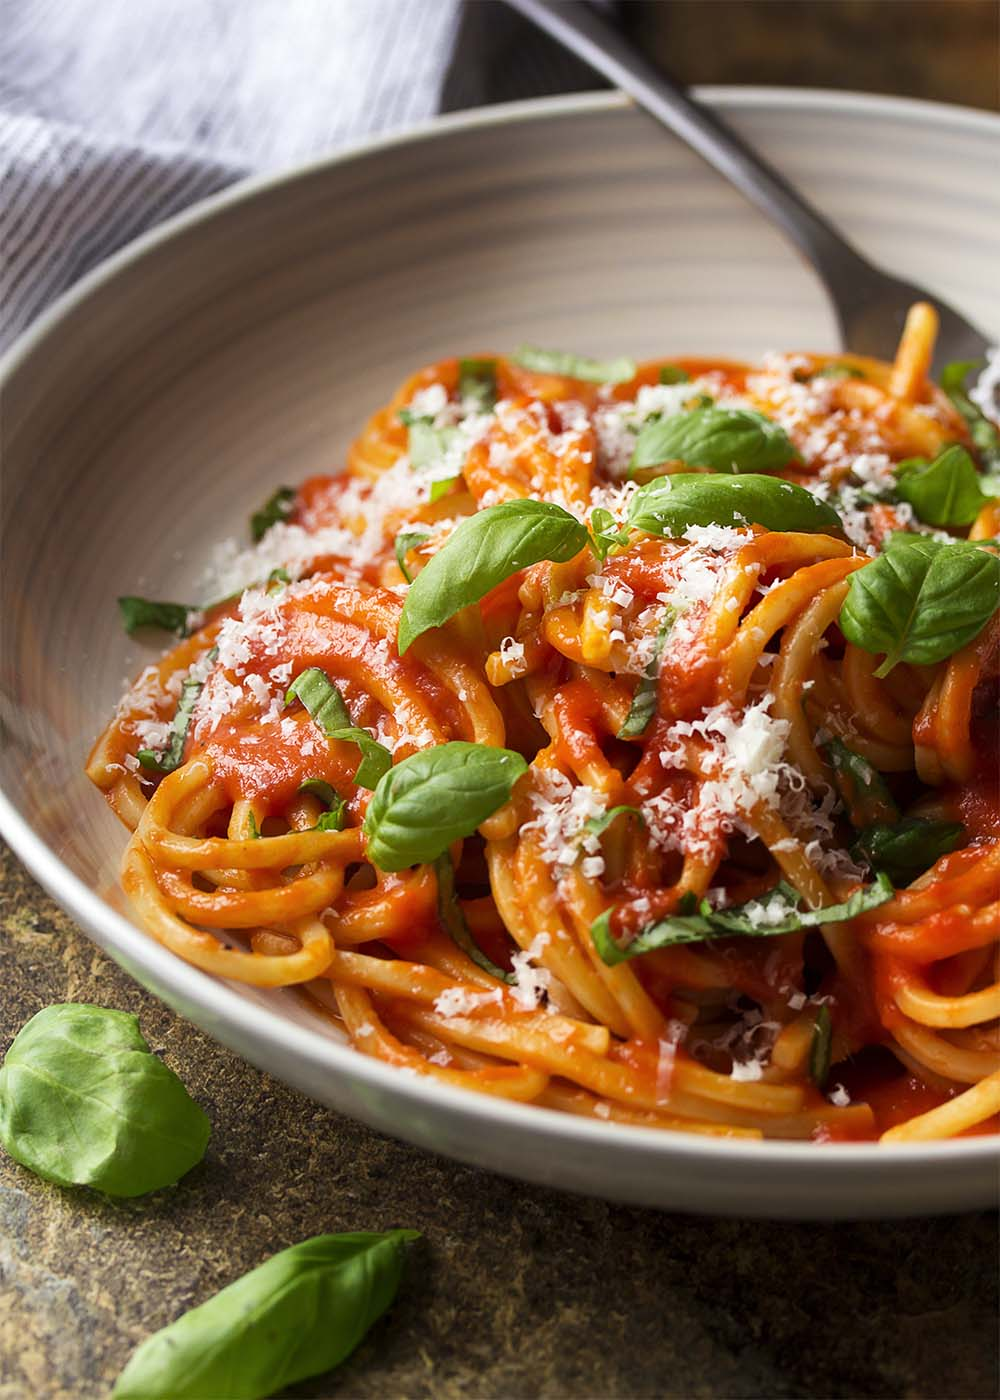 A bowl of pasta al pomodoro showing thick spaghetti topped with tomato sauce, basil leaves, and shredded parmesan cheese.